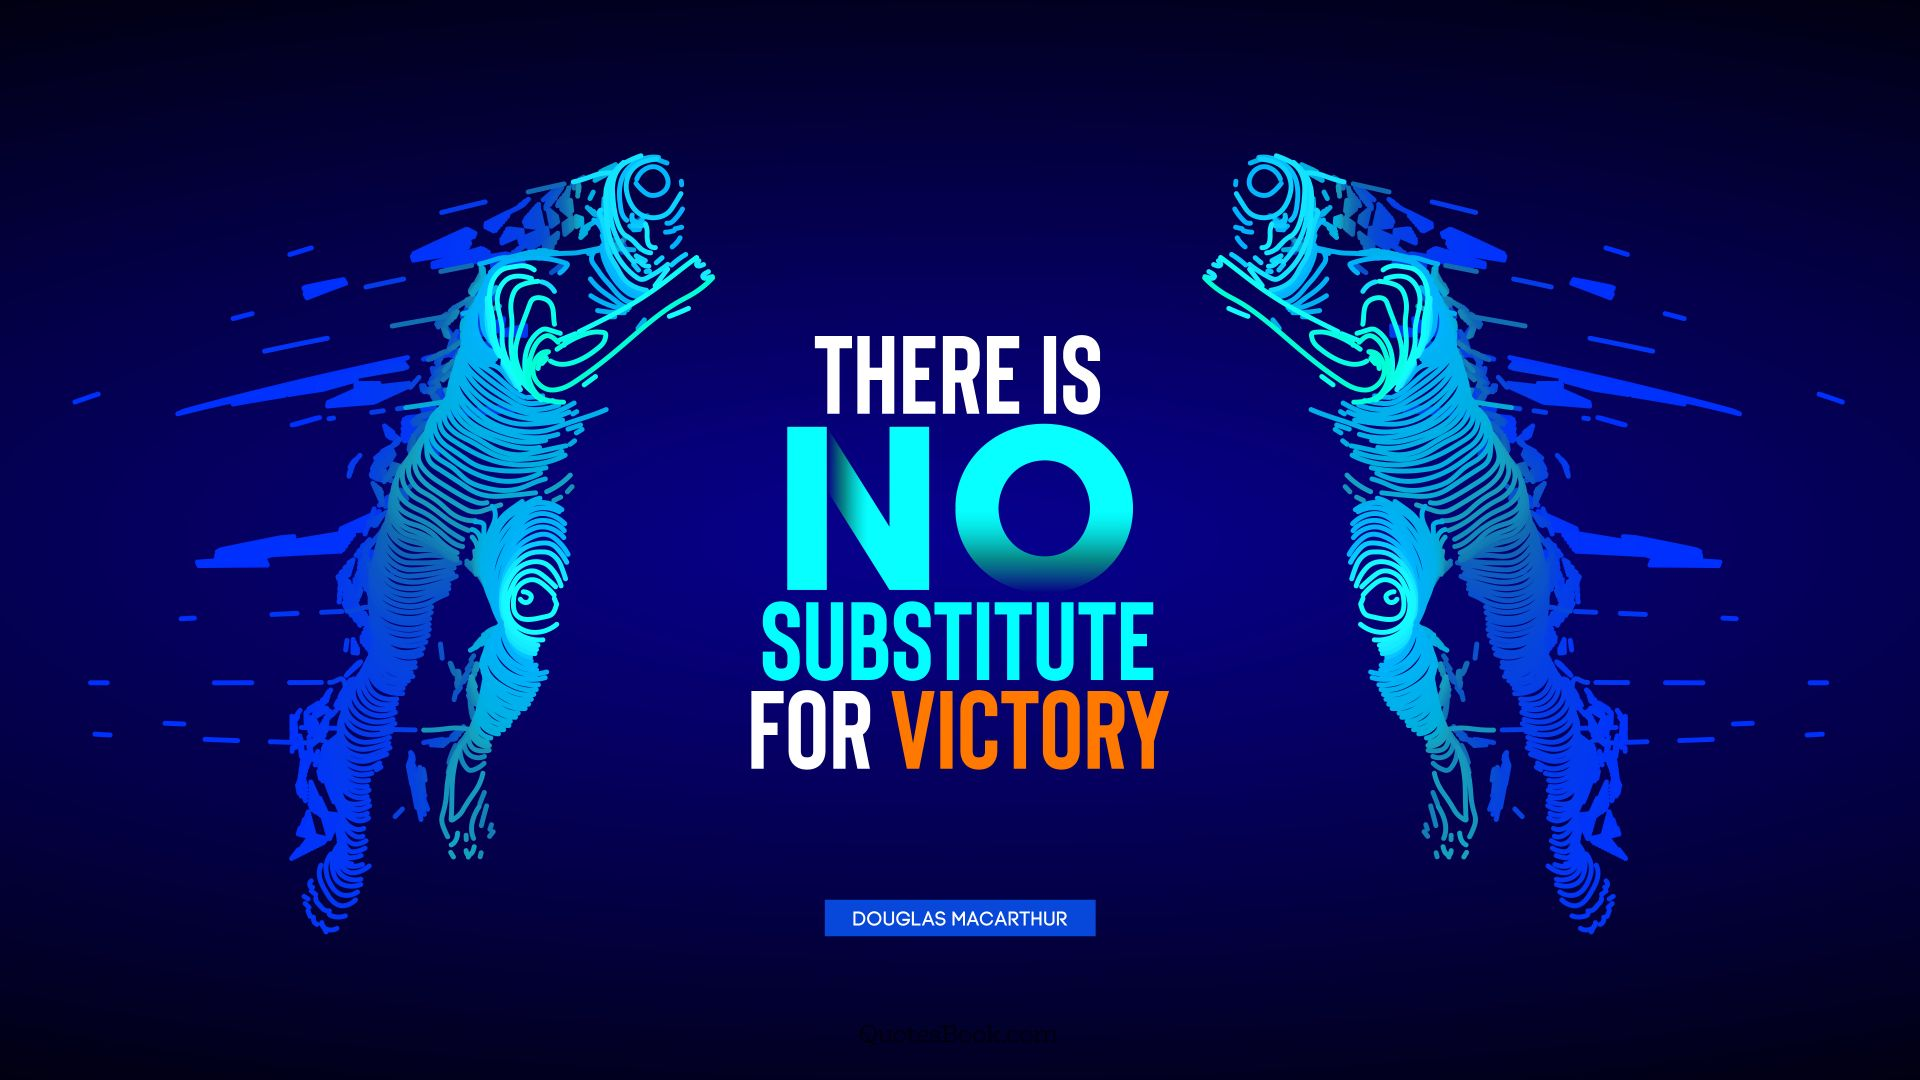 There is no substitute for victory. - Quote by Douglas MacArthur